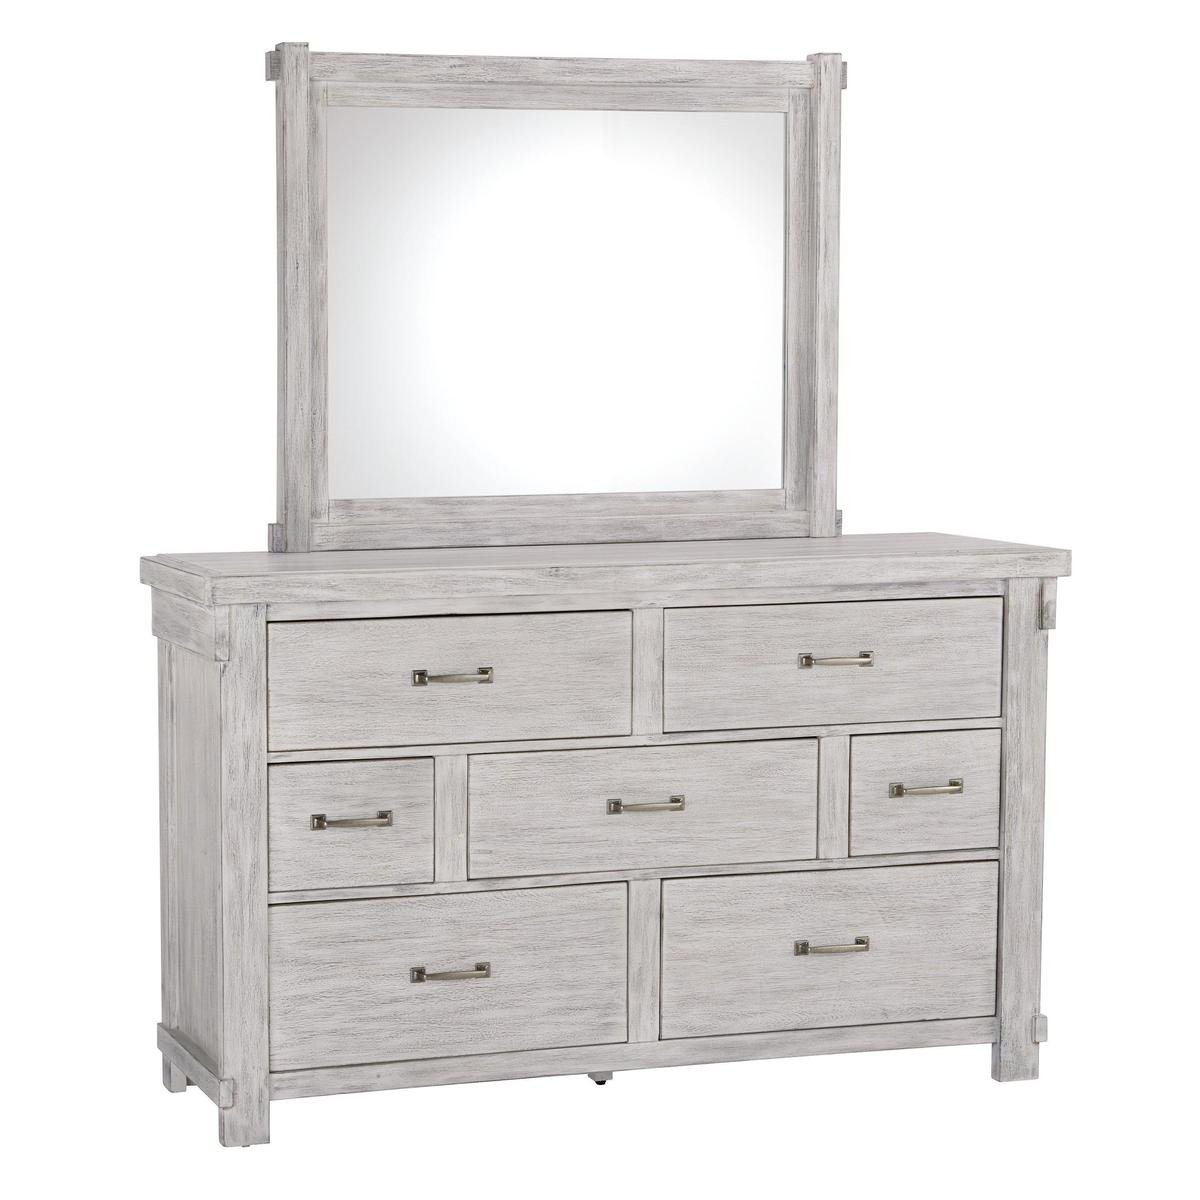 Jennifer Convertibles Bedroom Set Fresh Brashland Whitewash Bedroom Set